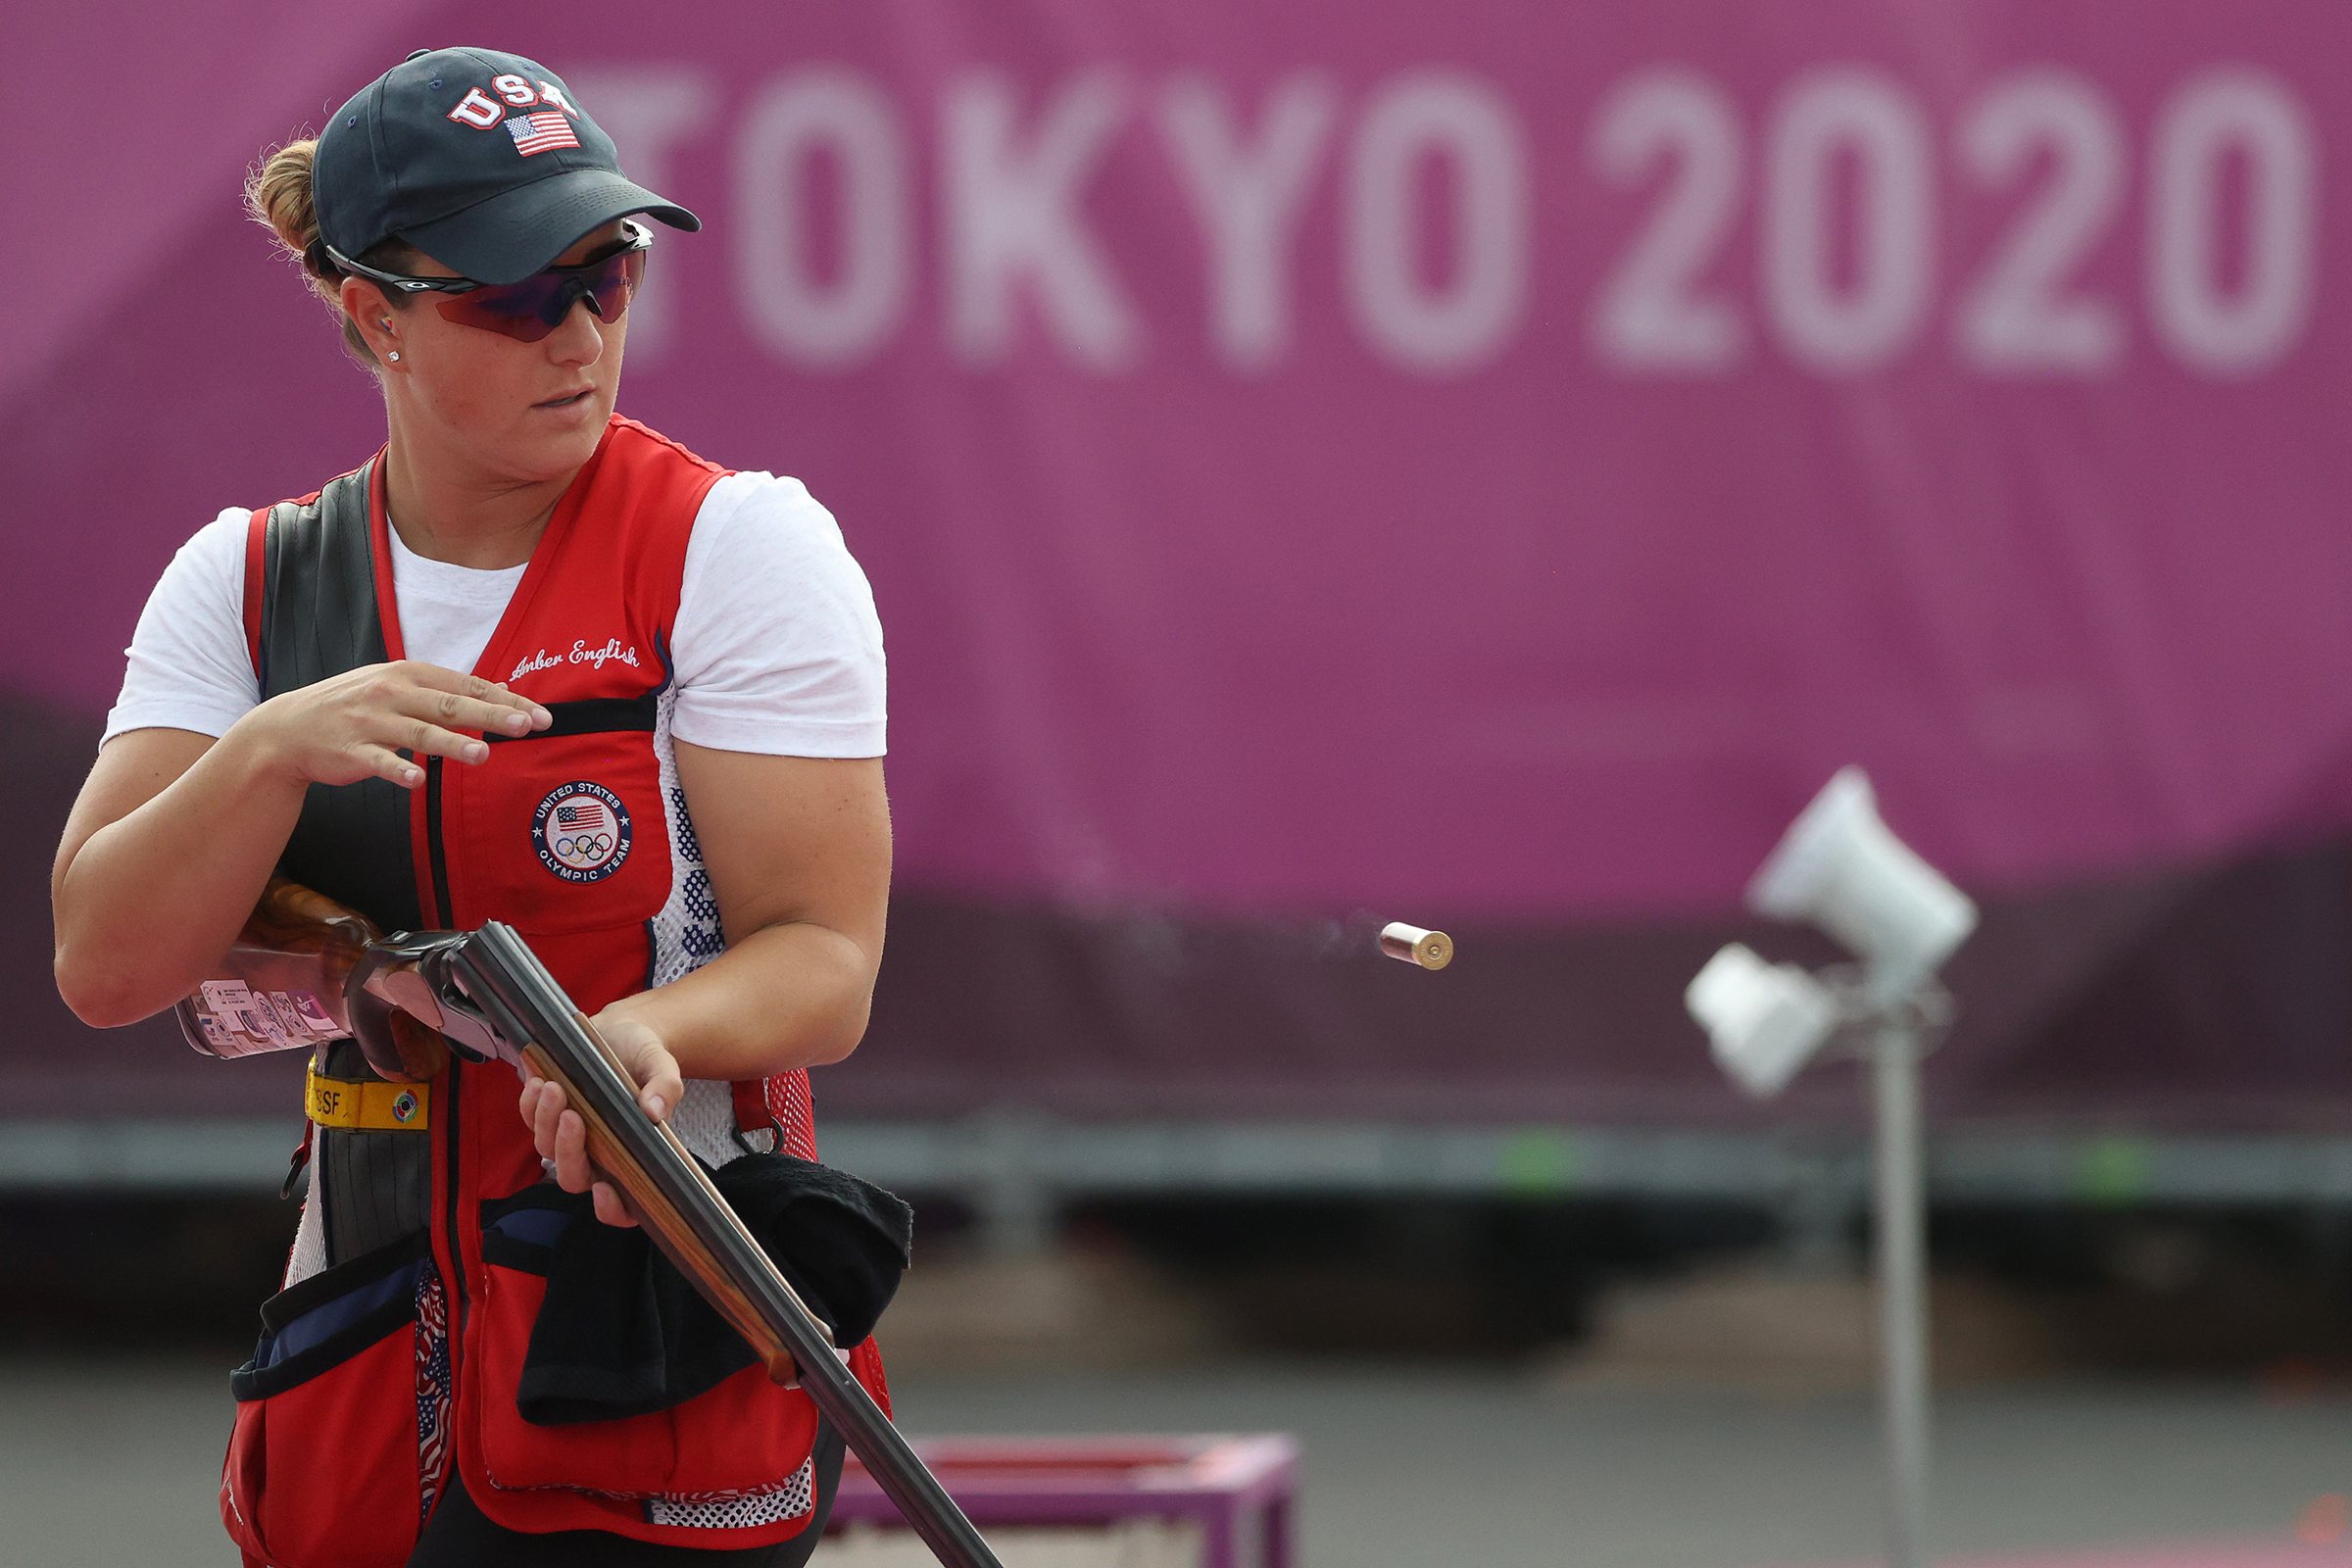 USA's Amber English during the skeet finals on Monday, July 26.